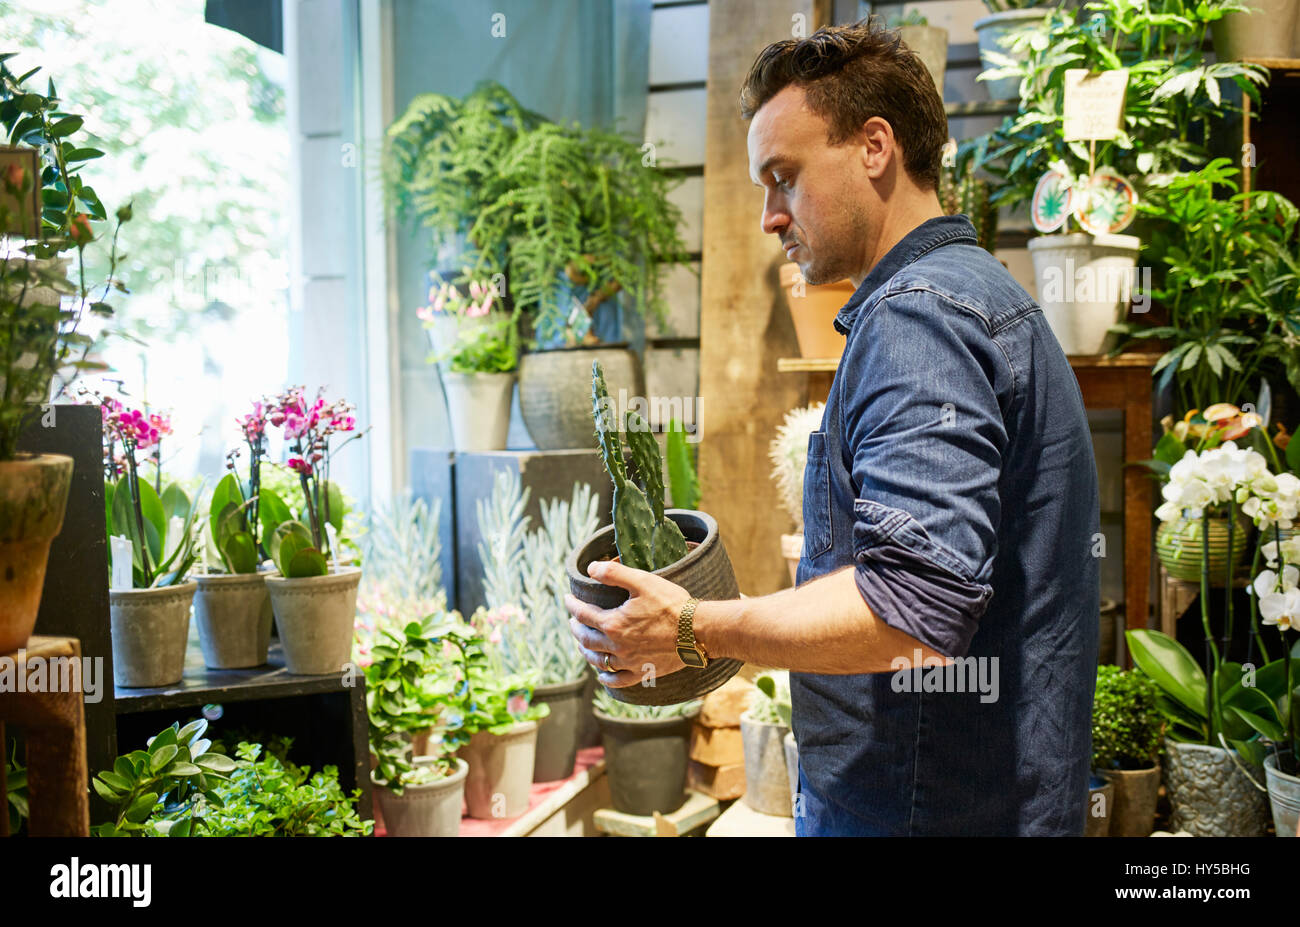 Sweden, Florist working in flower shop - Stock Image